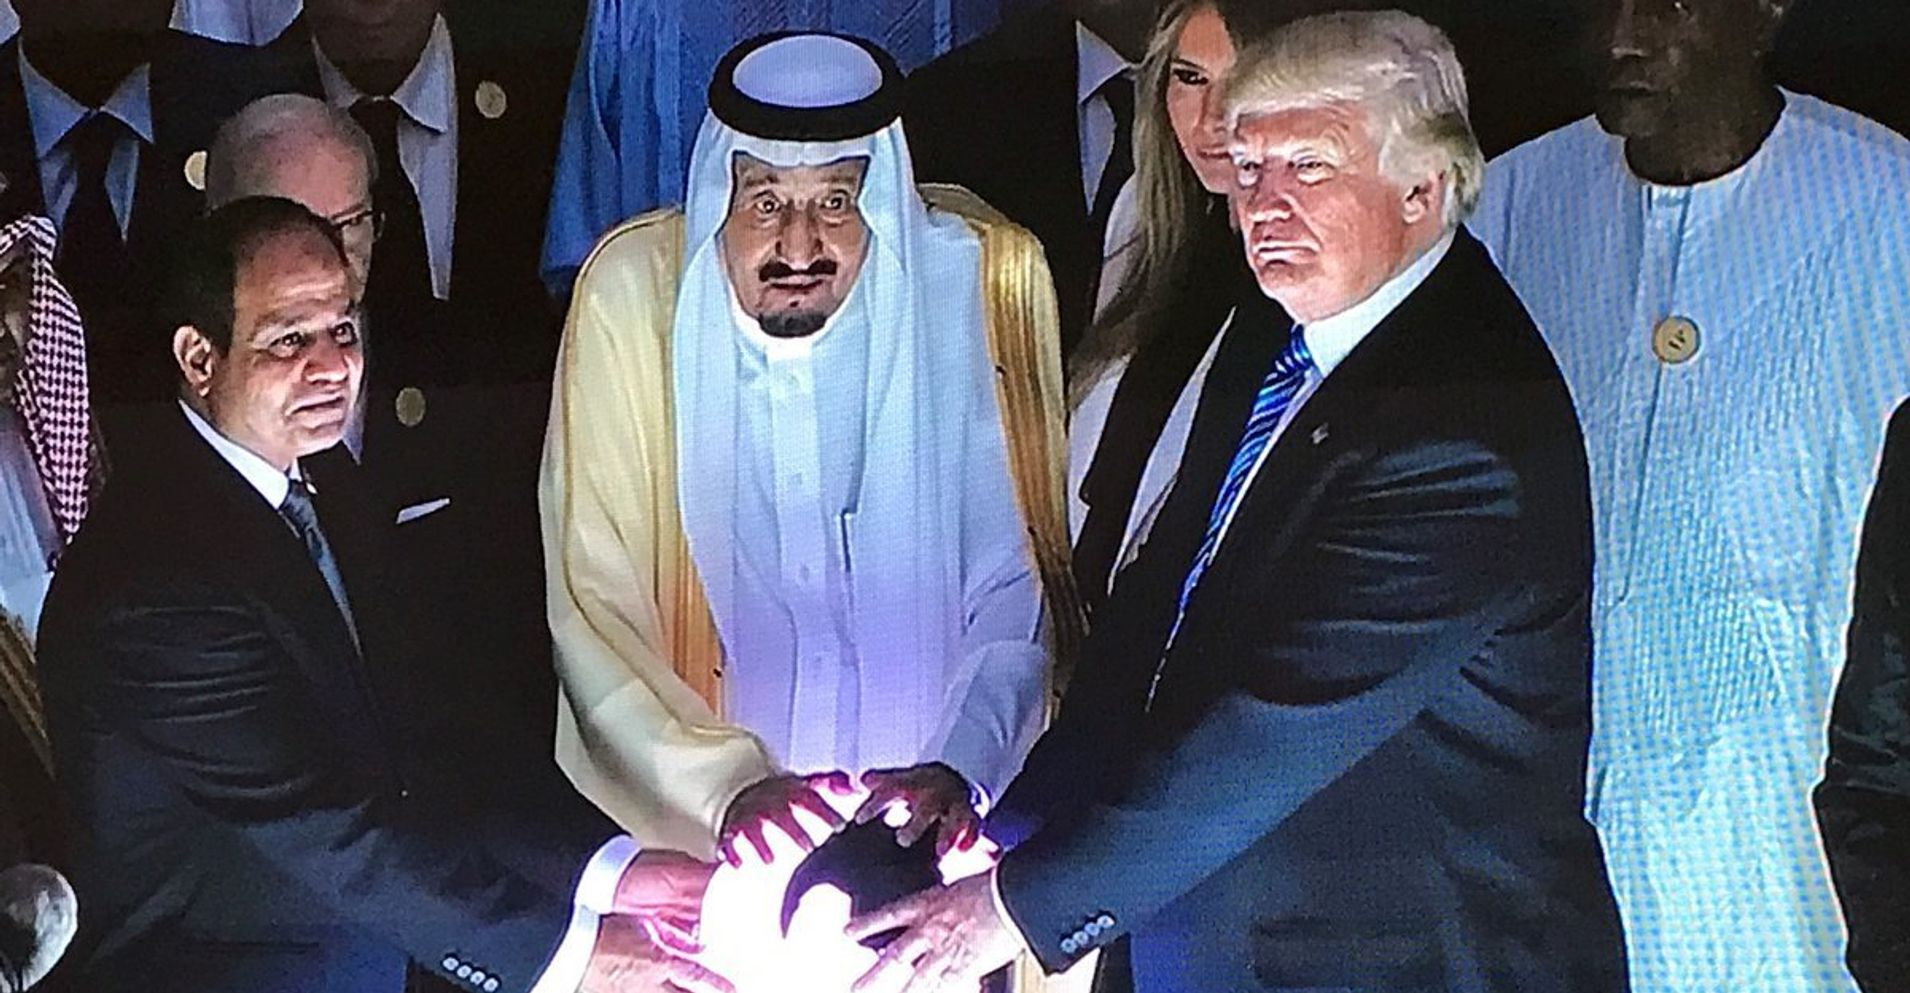 Trump Touched A Glowing Orb In Saudi Arabia And Folks Found It Just A Bit Odd